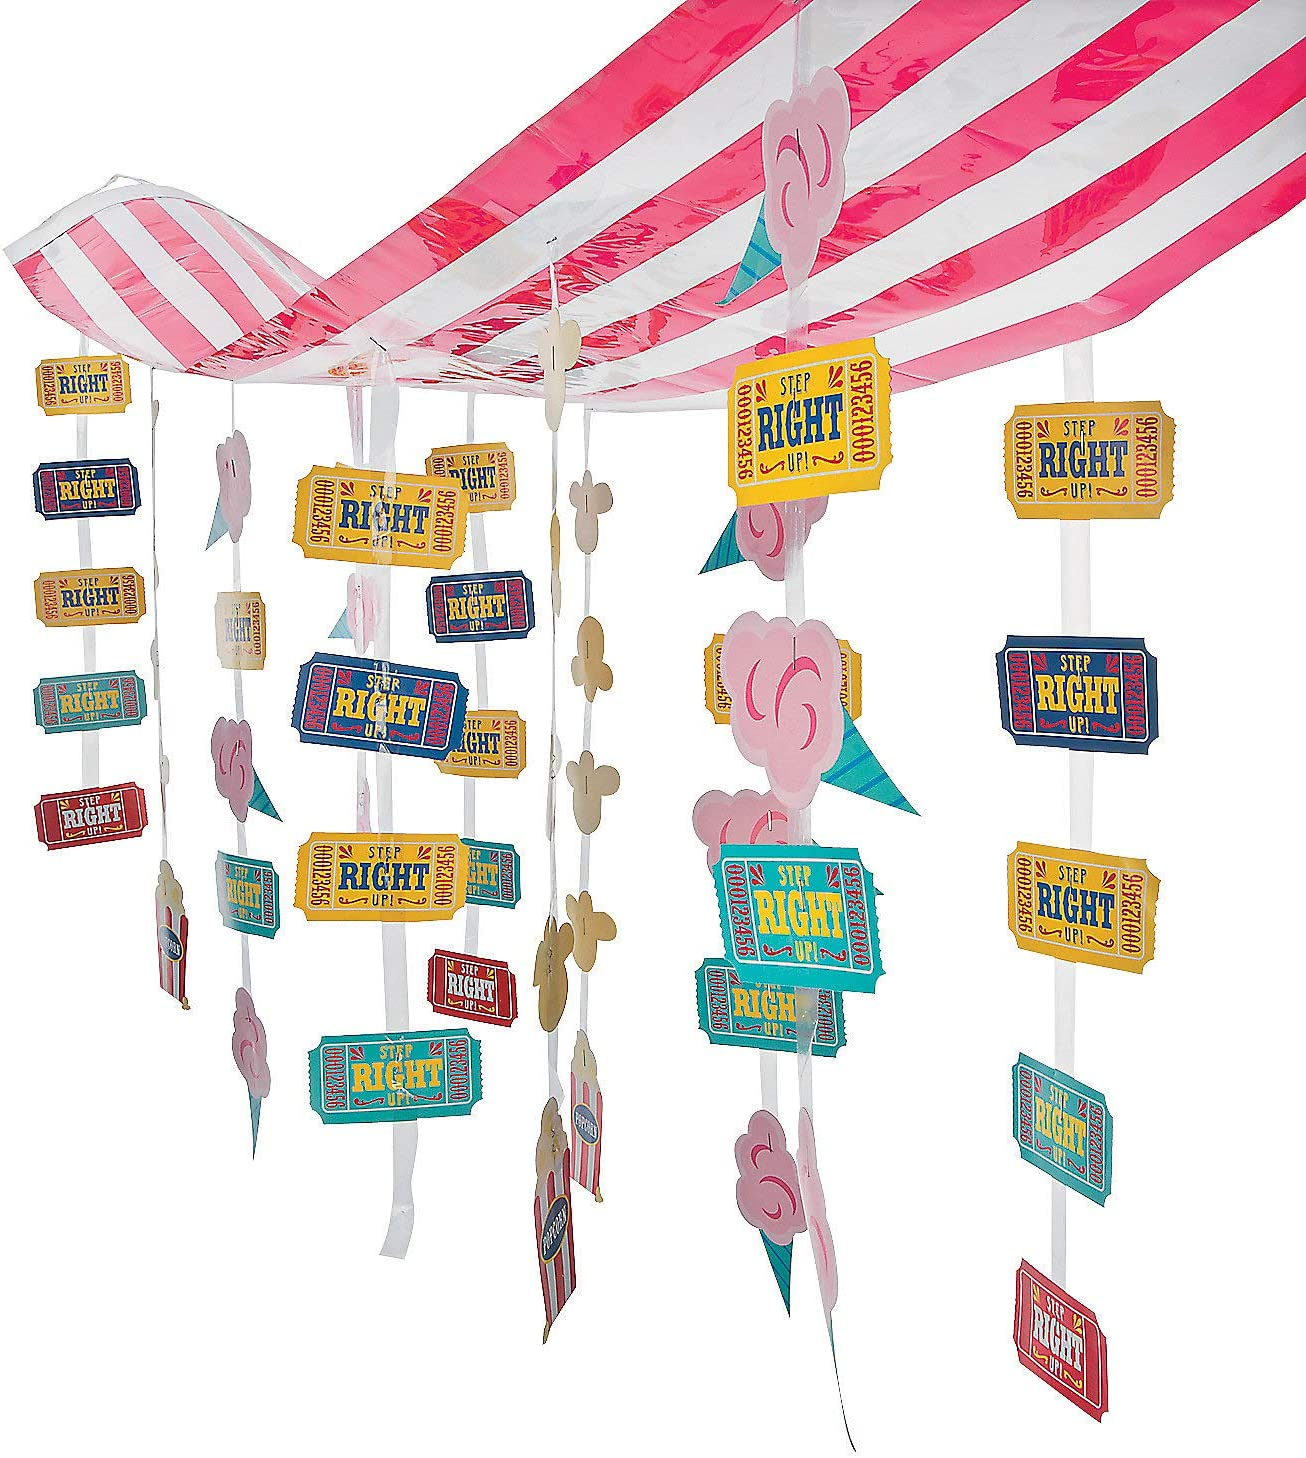 Fun Express Carnival Hanging Ceiling Decorations - 12 feet Long - Hanging Birthday Party Decor